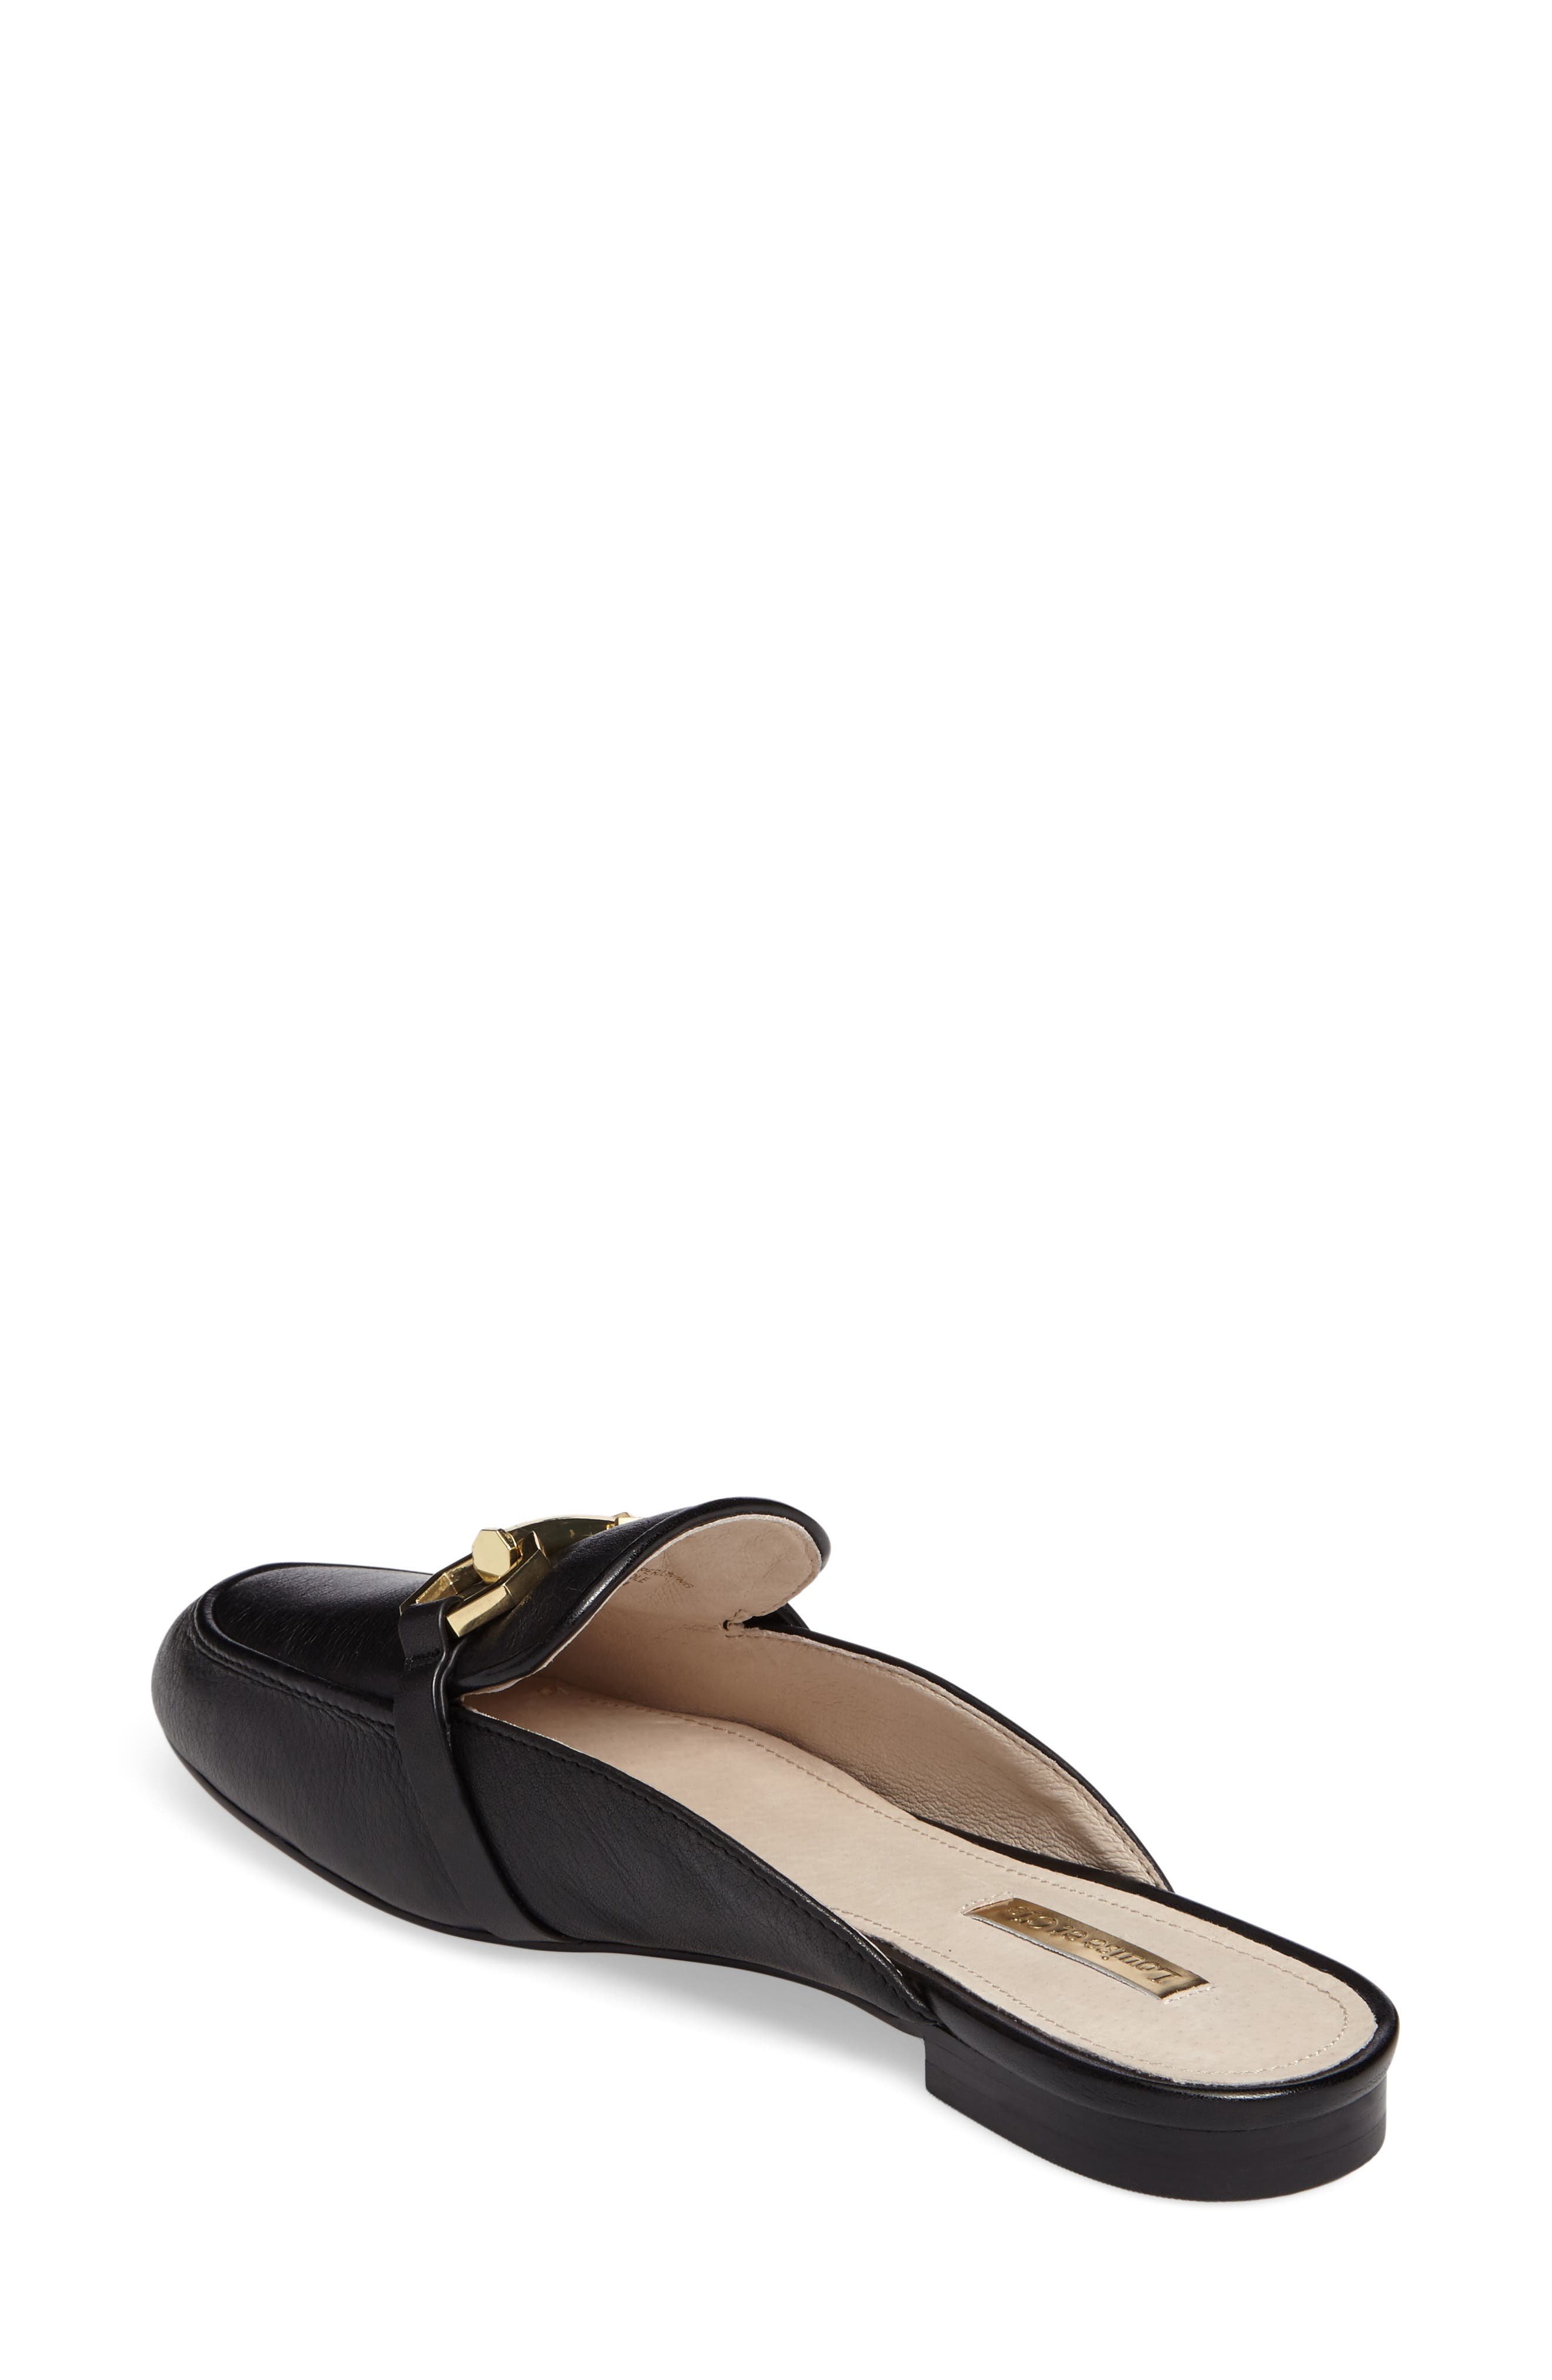 Finay Loafer Mule,                             Alternate thumbnail 2, color,                             002